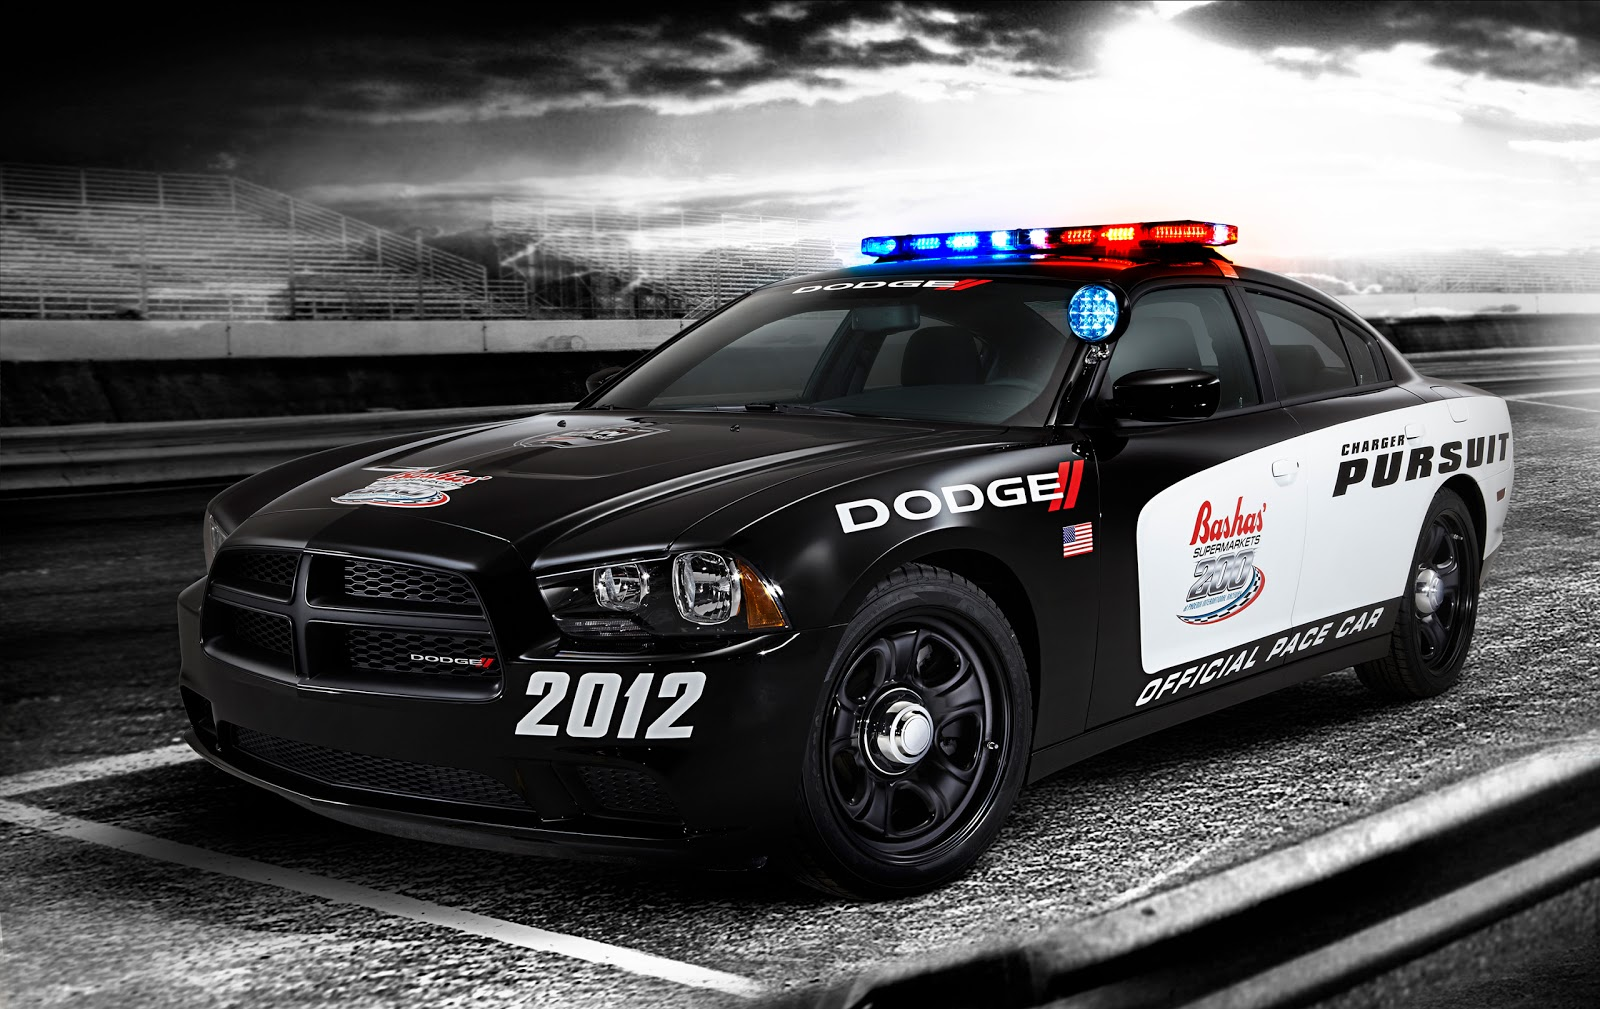 Dodge Charger Pursuit disponibl Wallpaper Backgrounds